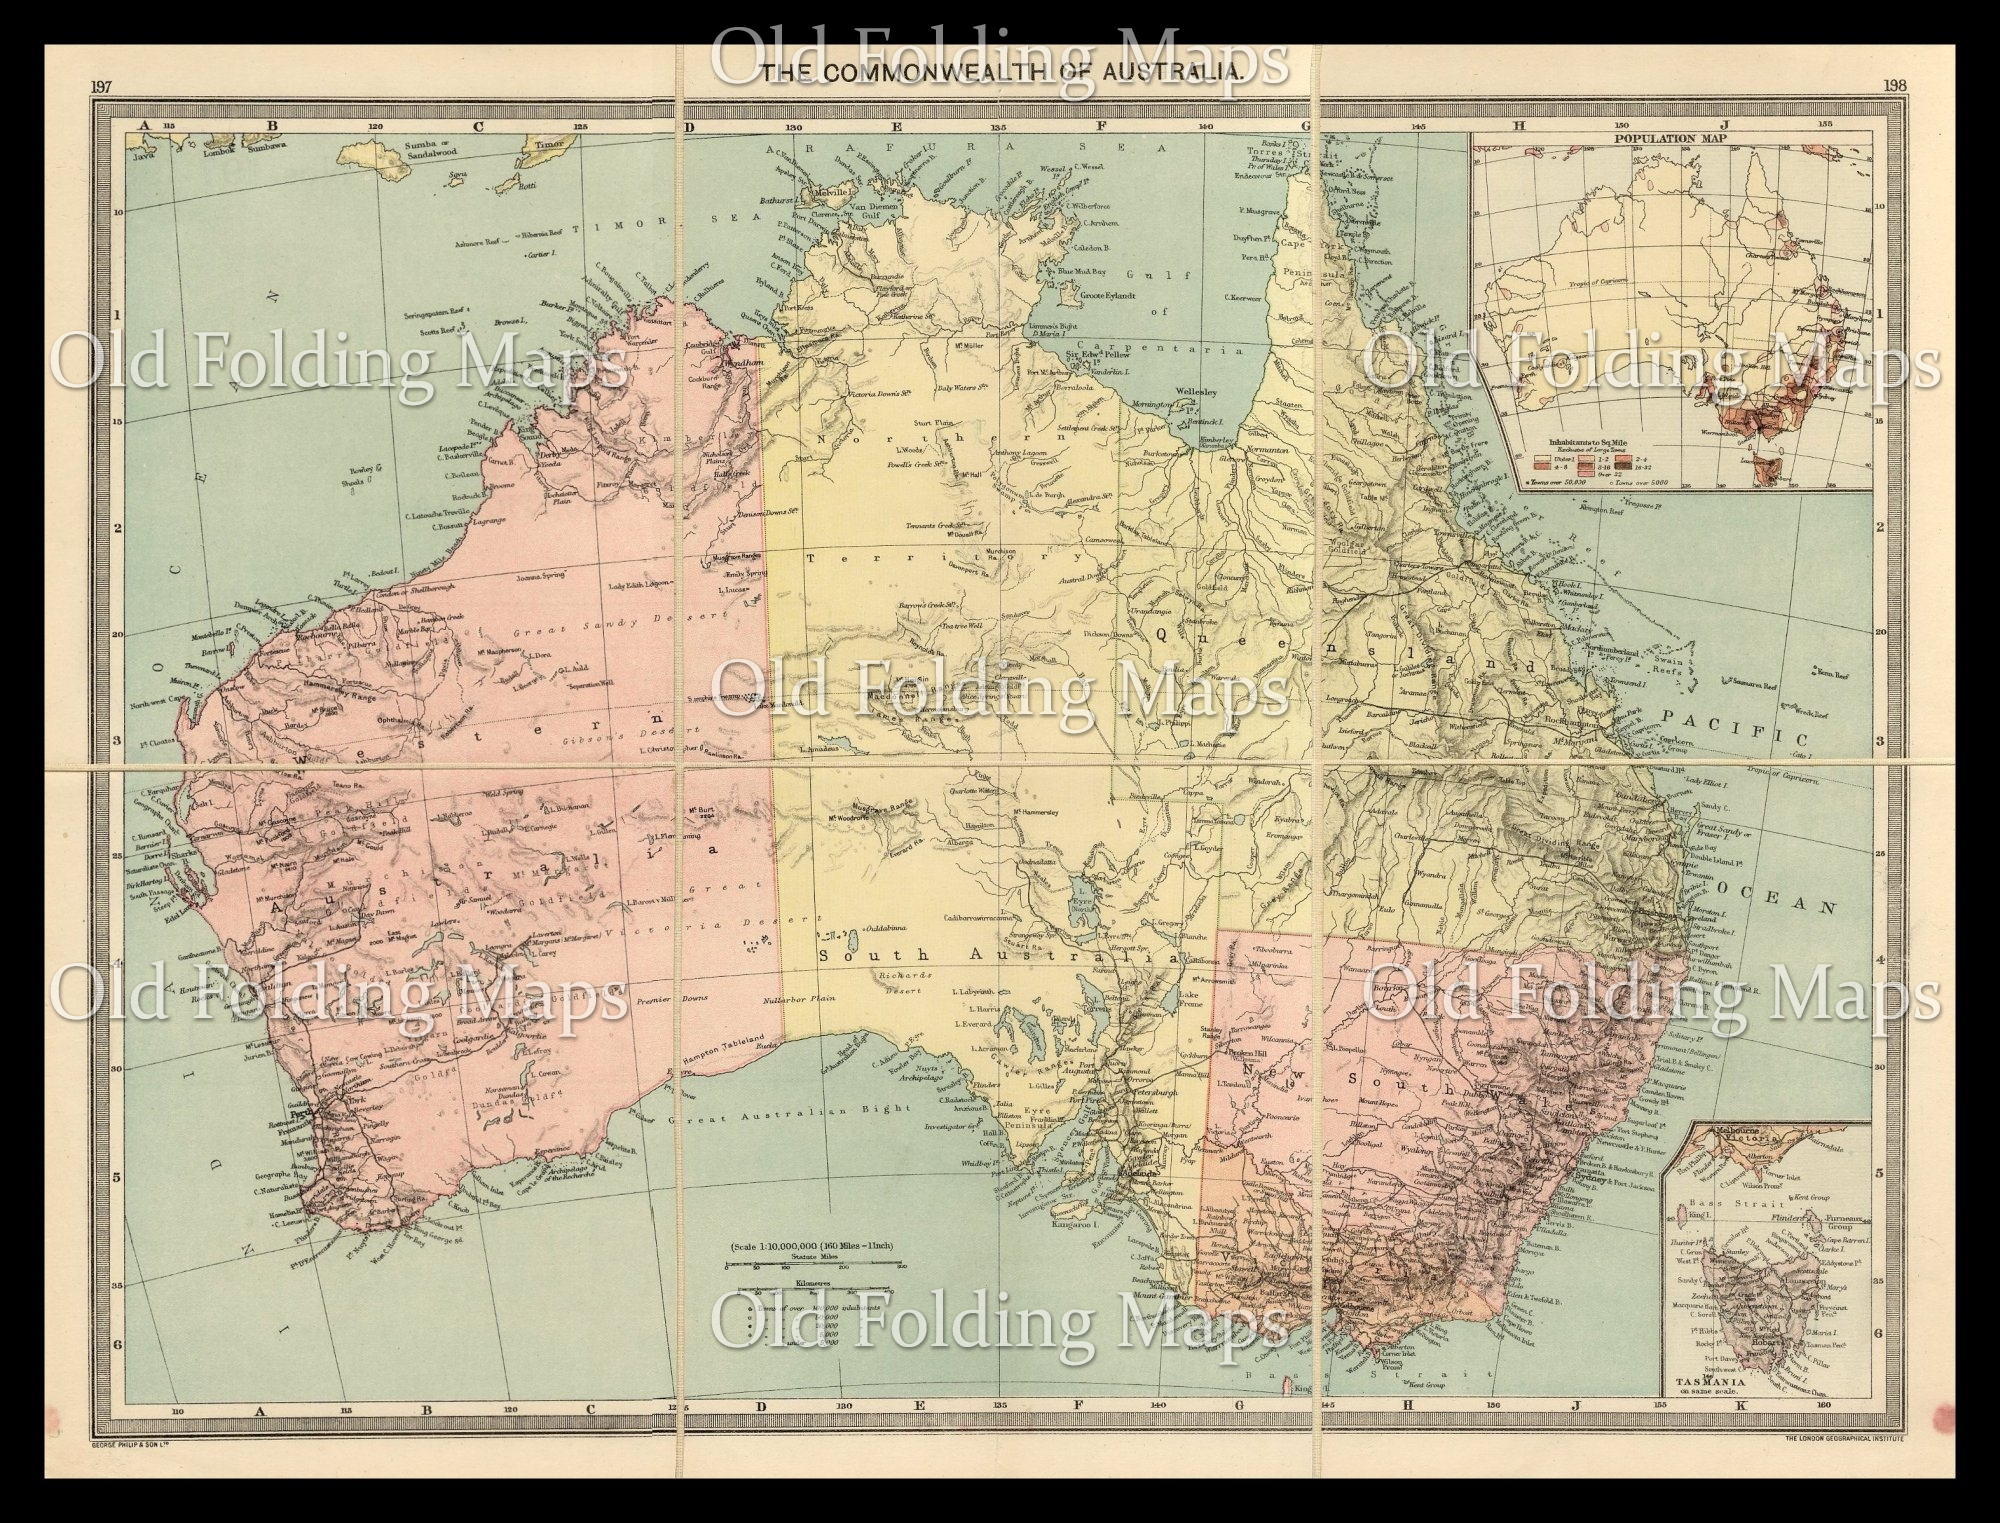 Australia Map 1900.Old Map Of The Commonwealth Of Australia Circa 1900